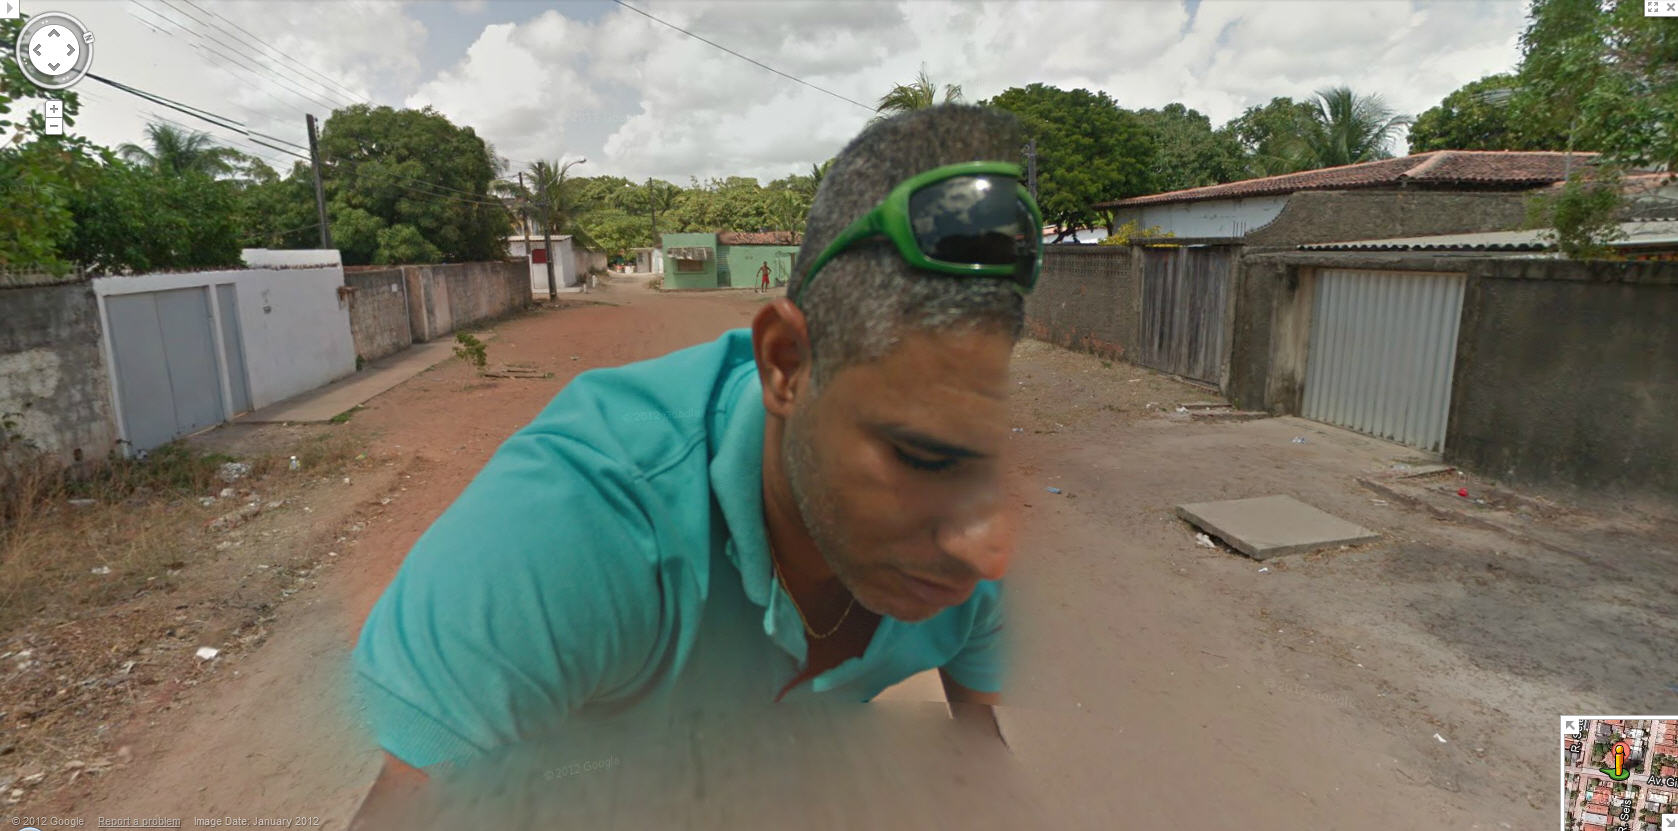 Google Street View Driver Takes a Ride on the Camera in ... on google engineer, google hotels, google airlines, google media, google marketing, google id,